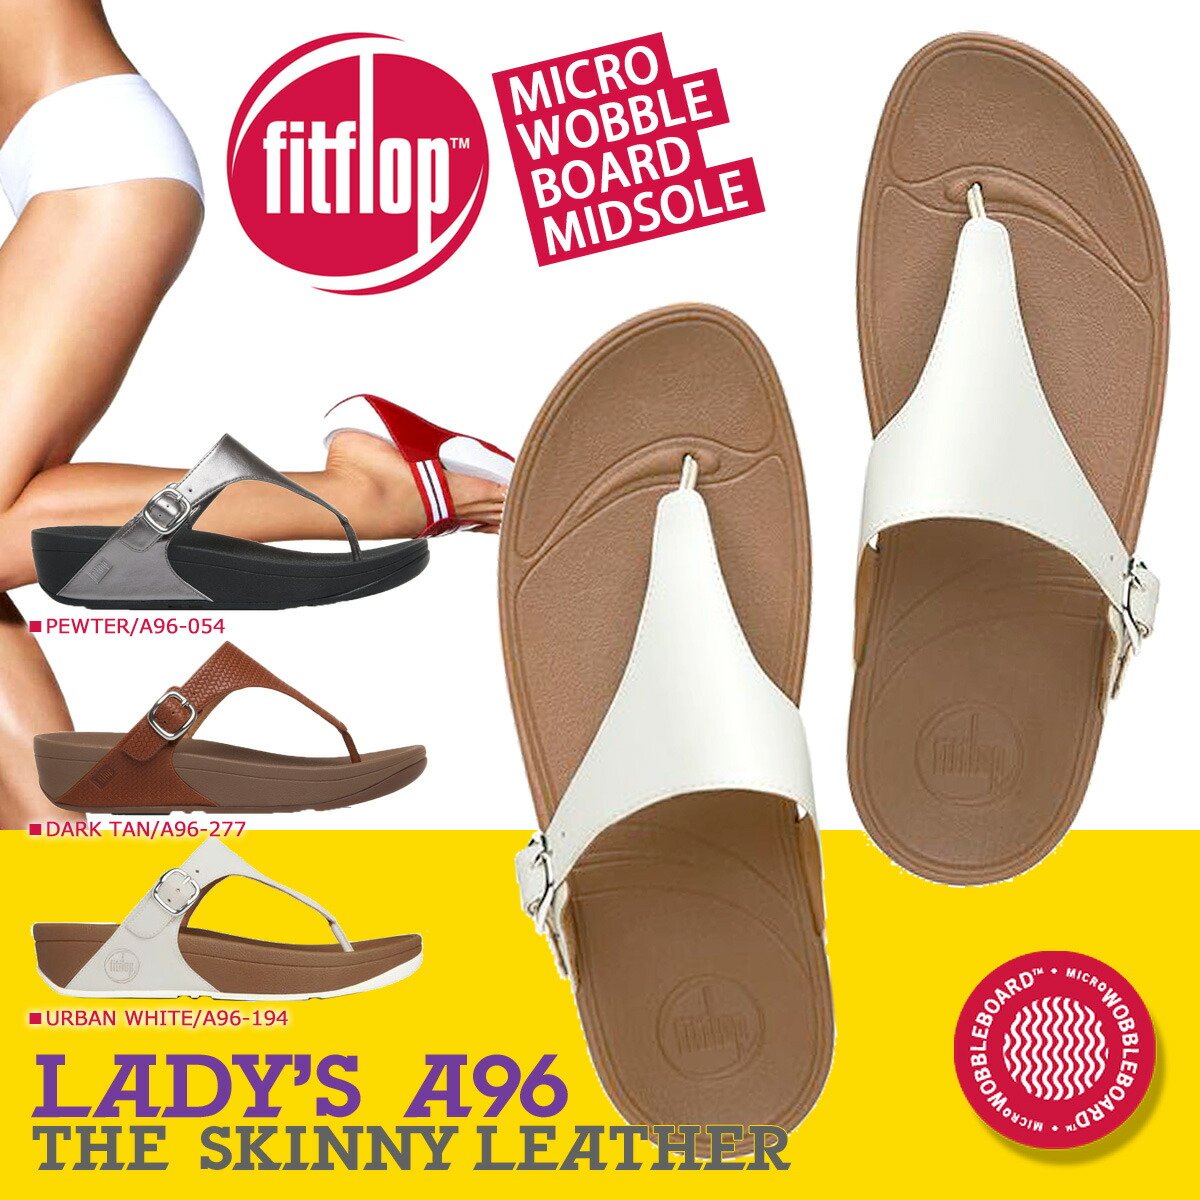 FitFlop フィットフロップ スキニー サンダル THE SKINNY TEXTURED A96 レディース